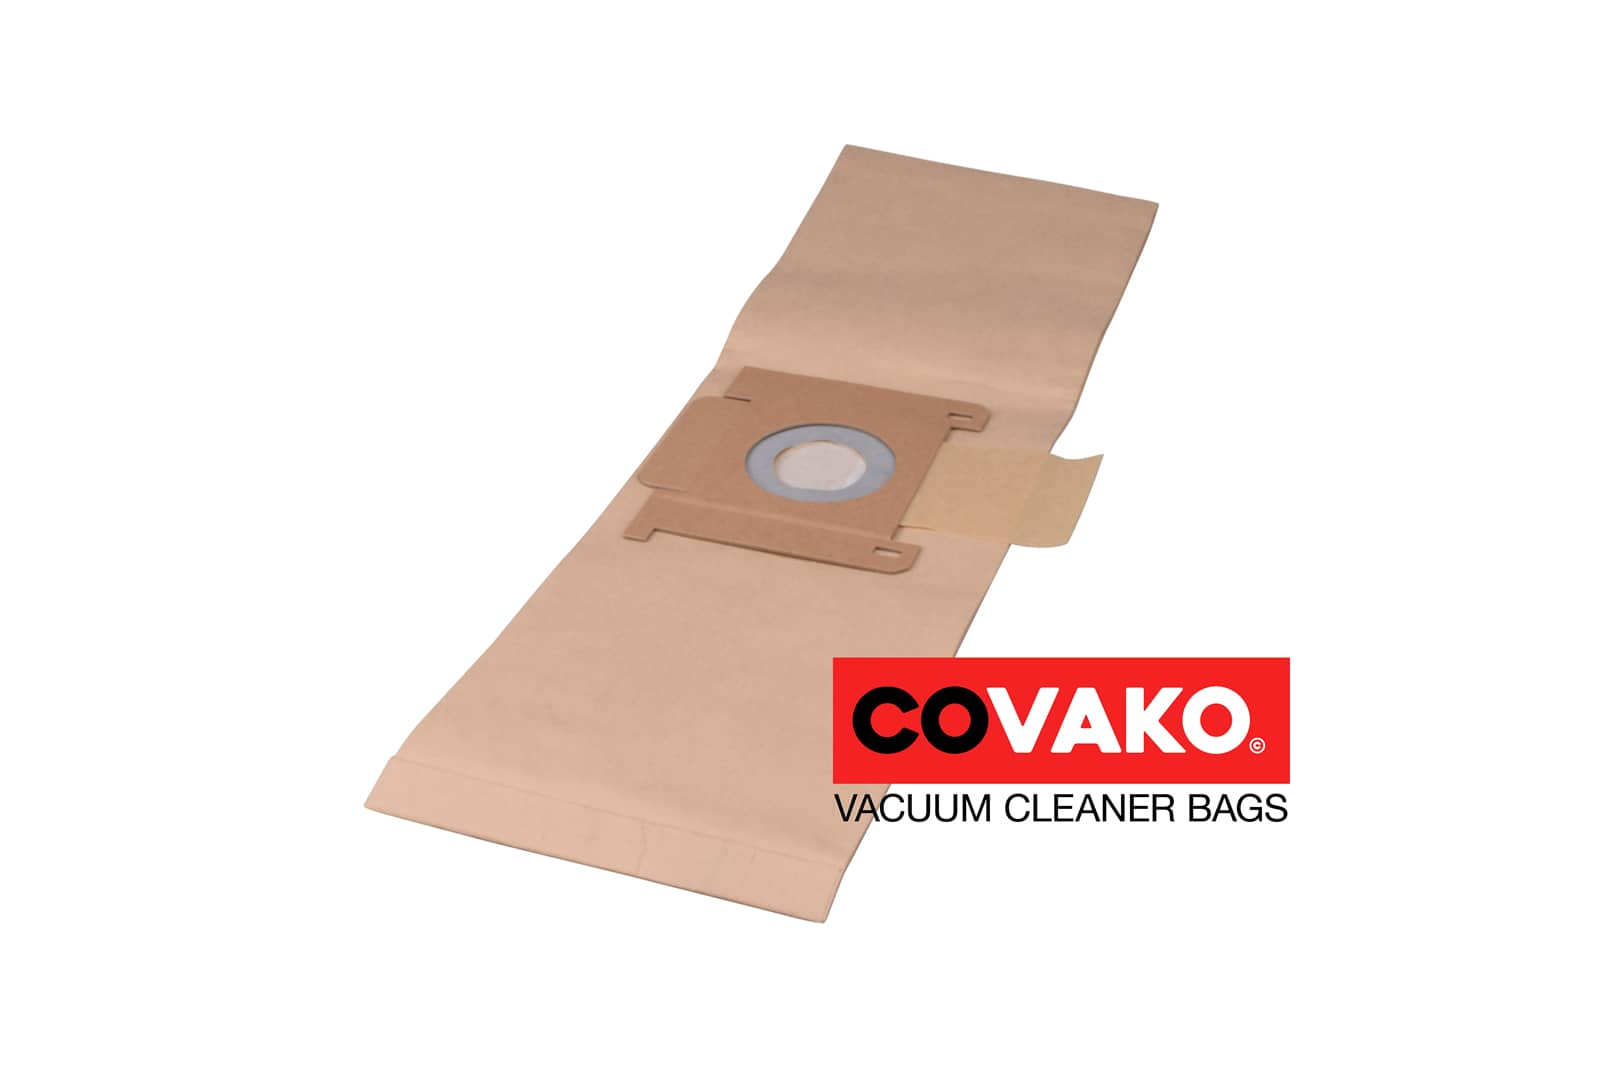 Clean a la Card I-vac C5 / Paper - Clean a la Card vacuum cleaner bags